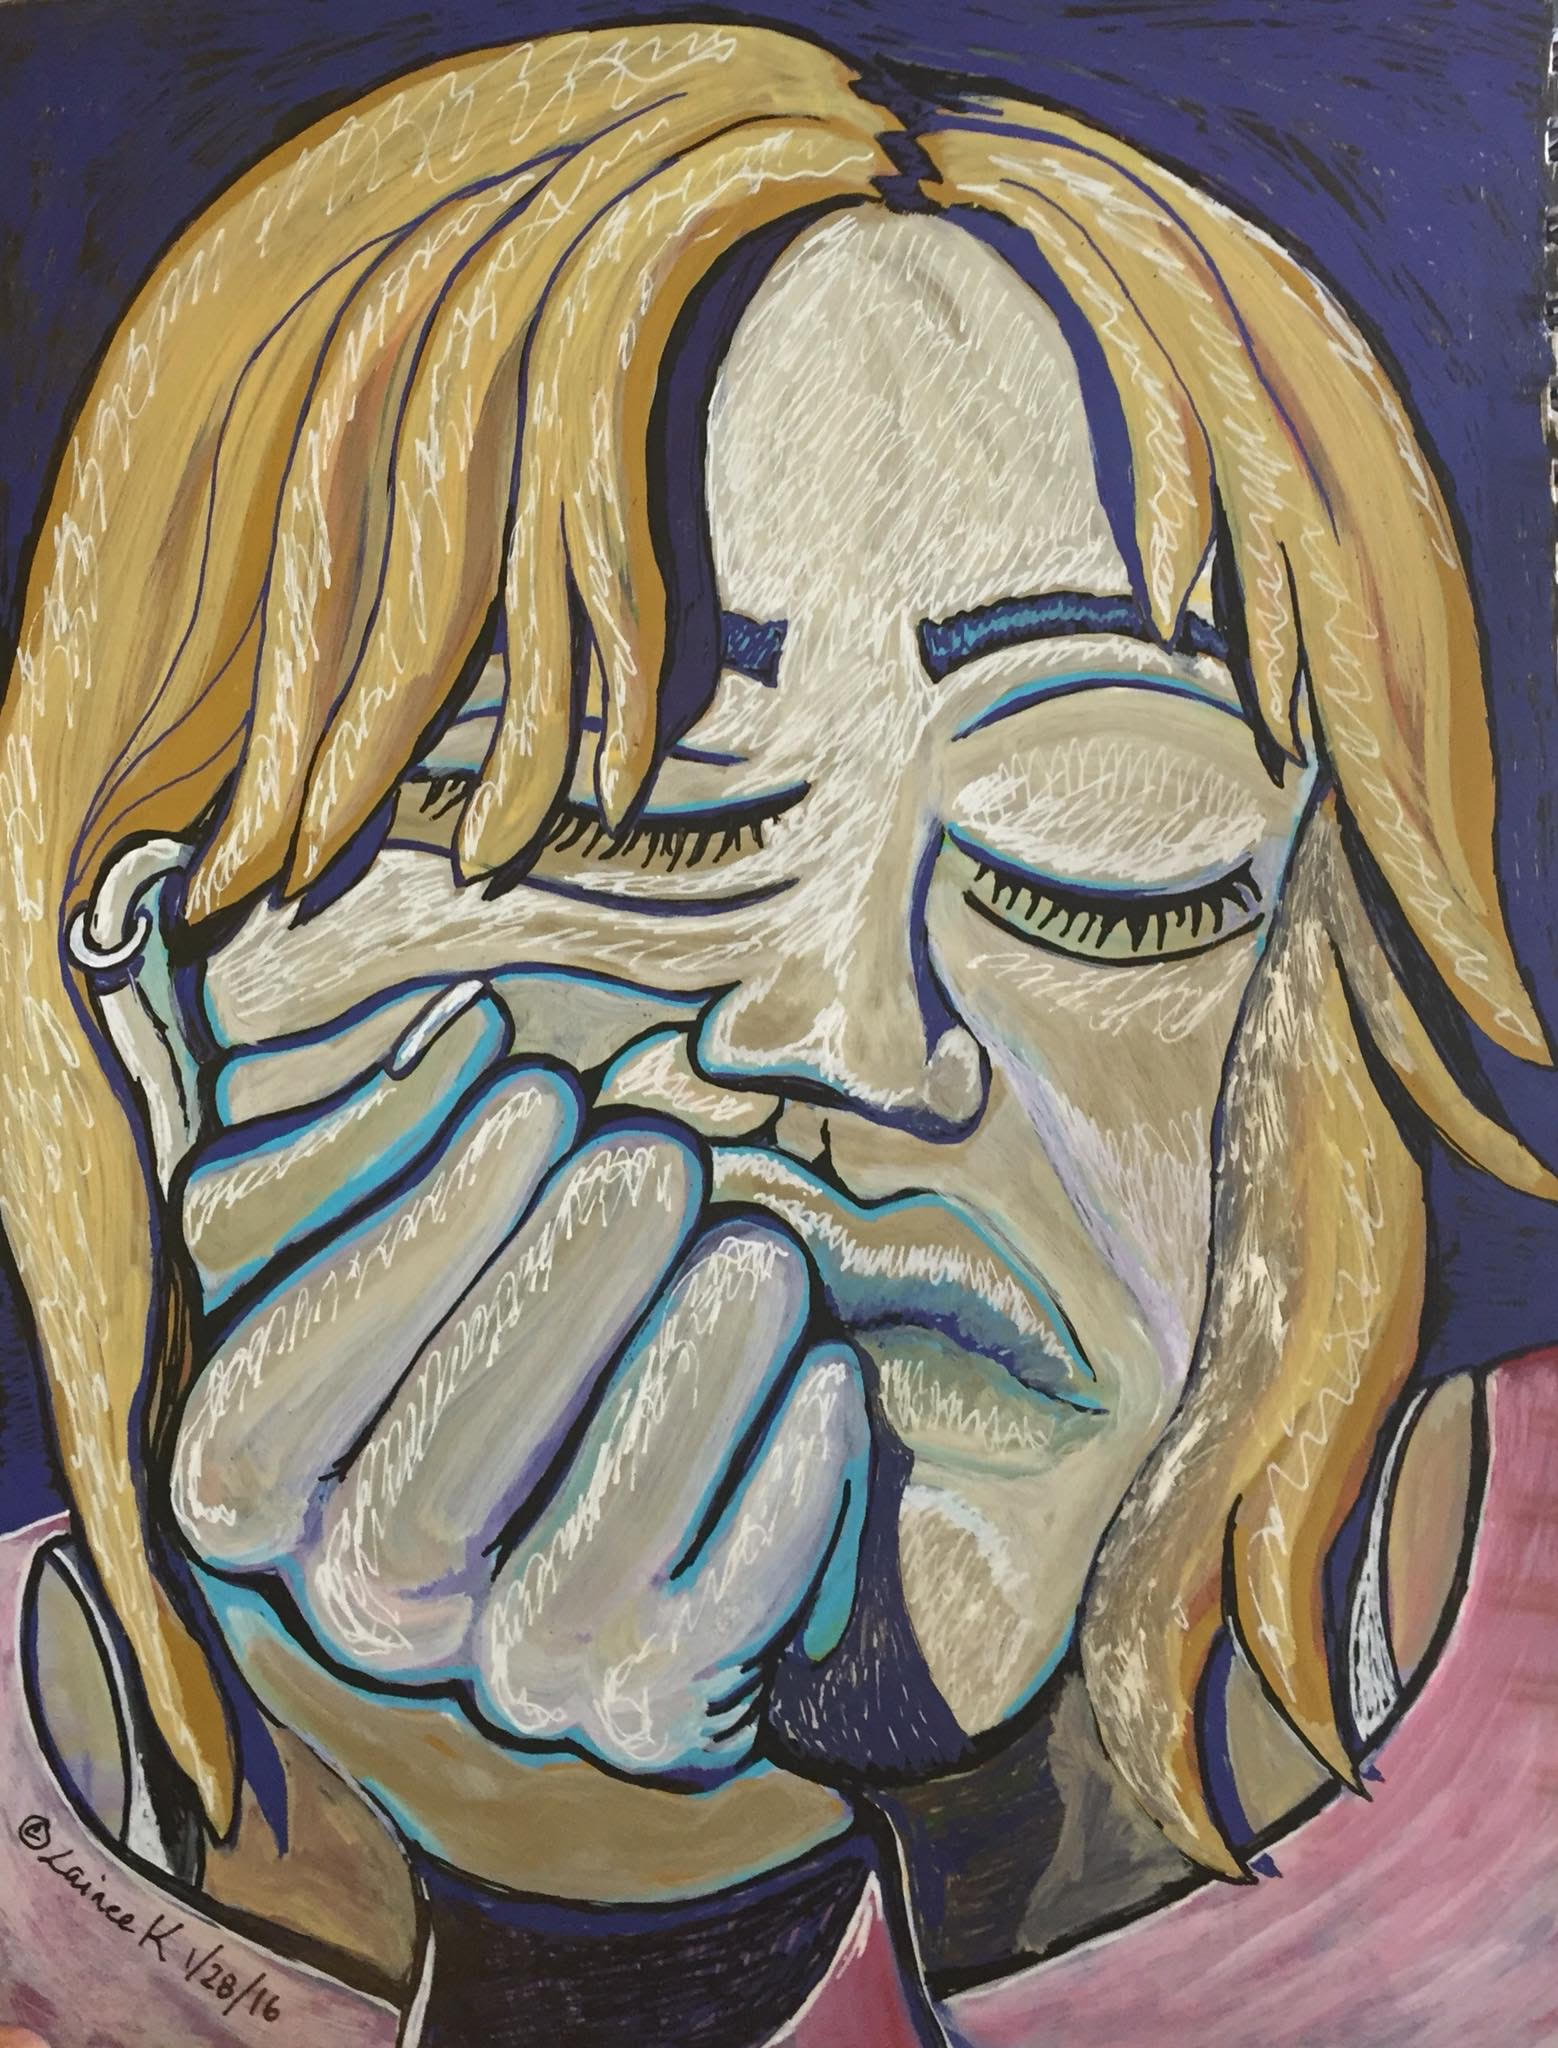 An abstract painting of a woman holding her head in her hand with a tired-looking expression.